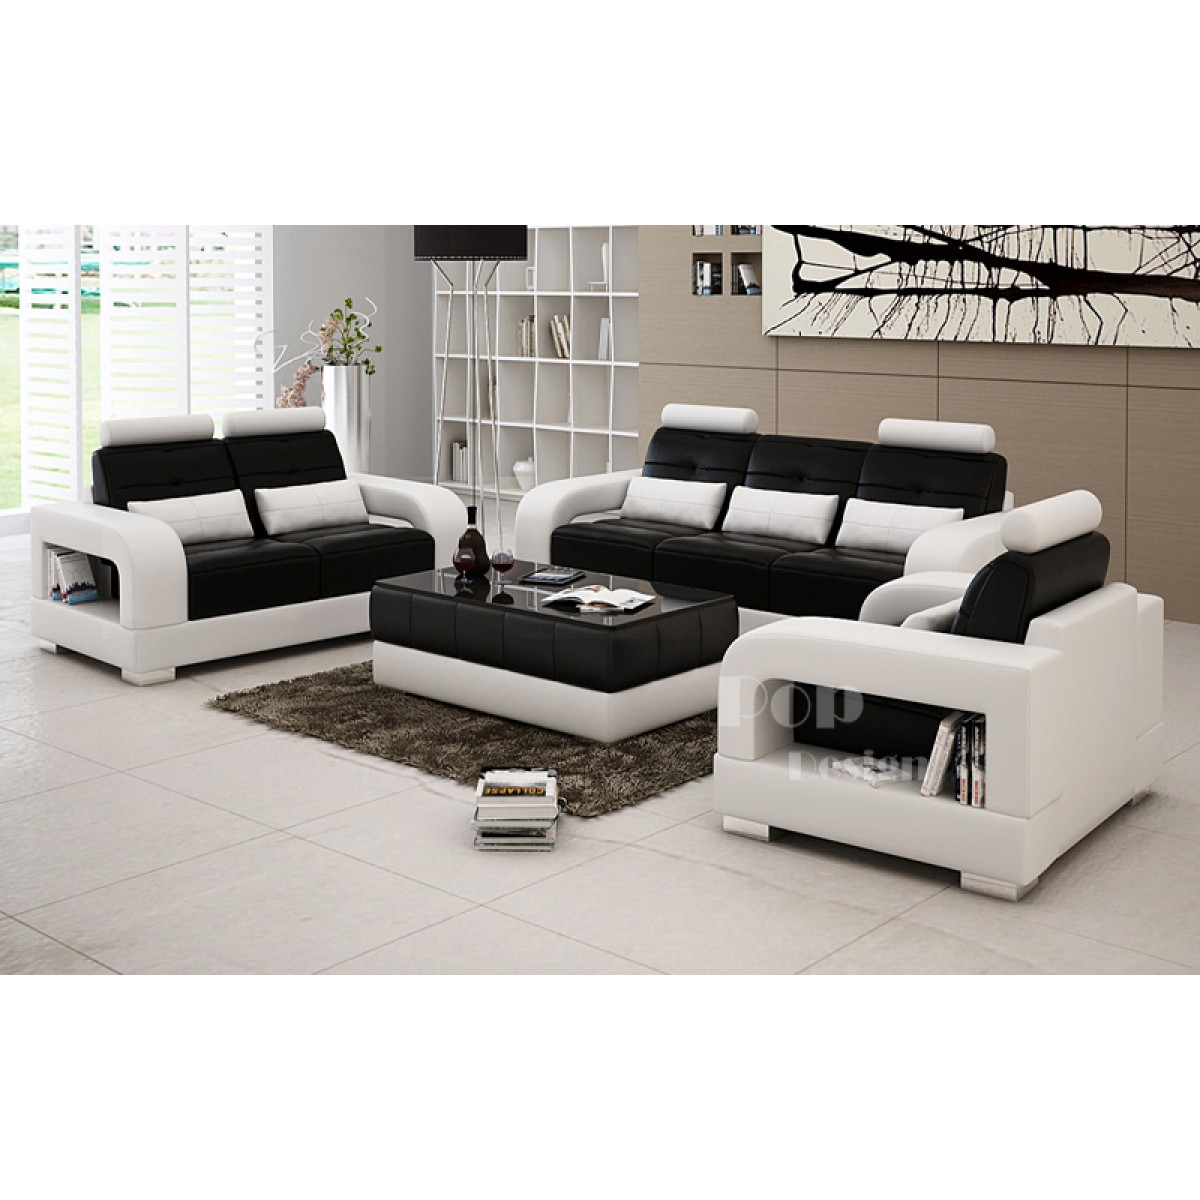 Salon set canap s personnalisable en cuir design salerno - Salon de luxe en cuir ...